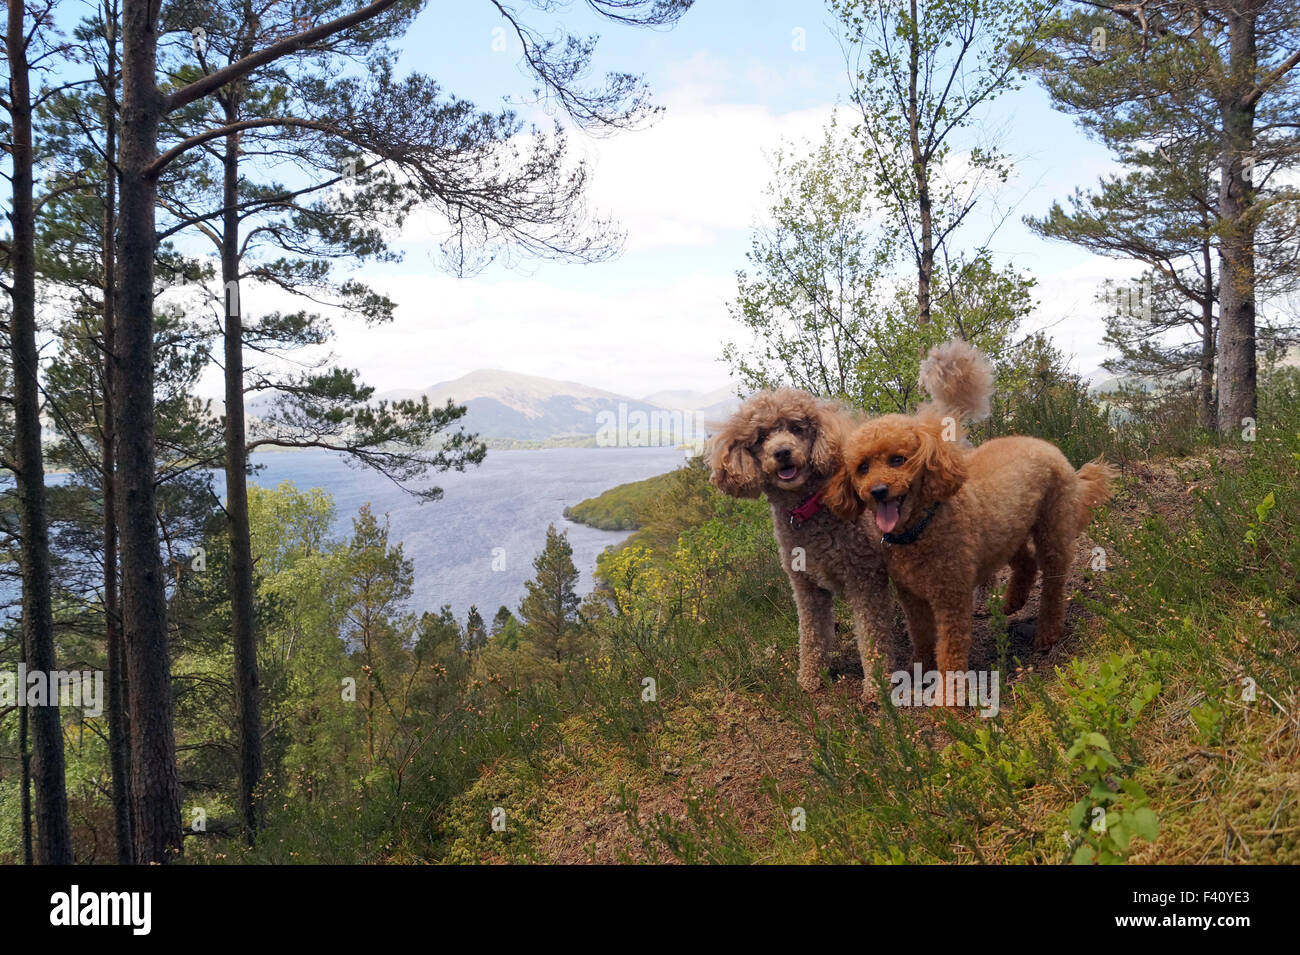 View of Loch Lomond from Conic Hill with Toy and Mini Poodles at the top of the hill happily looking at the camera - Stock Image